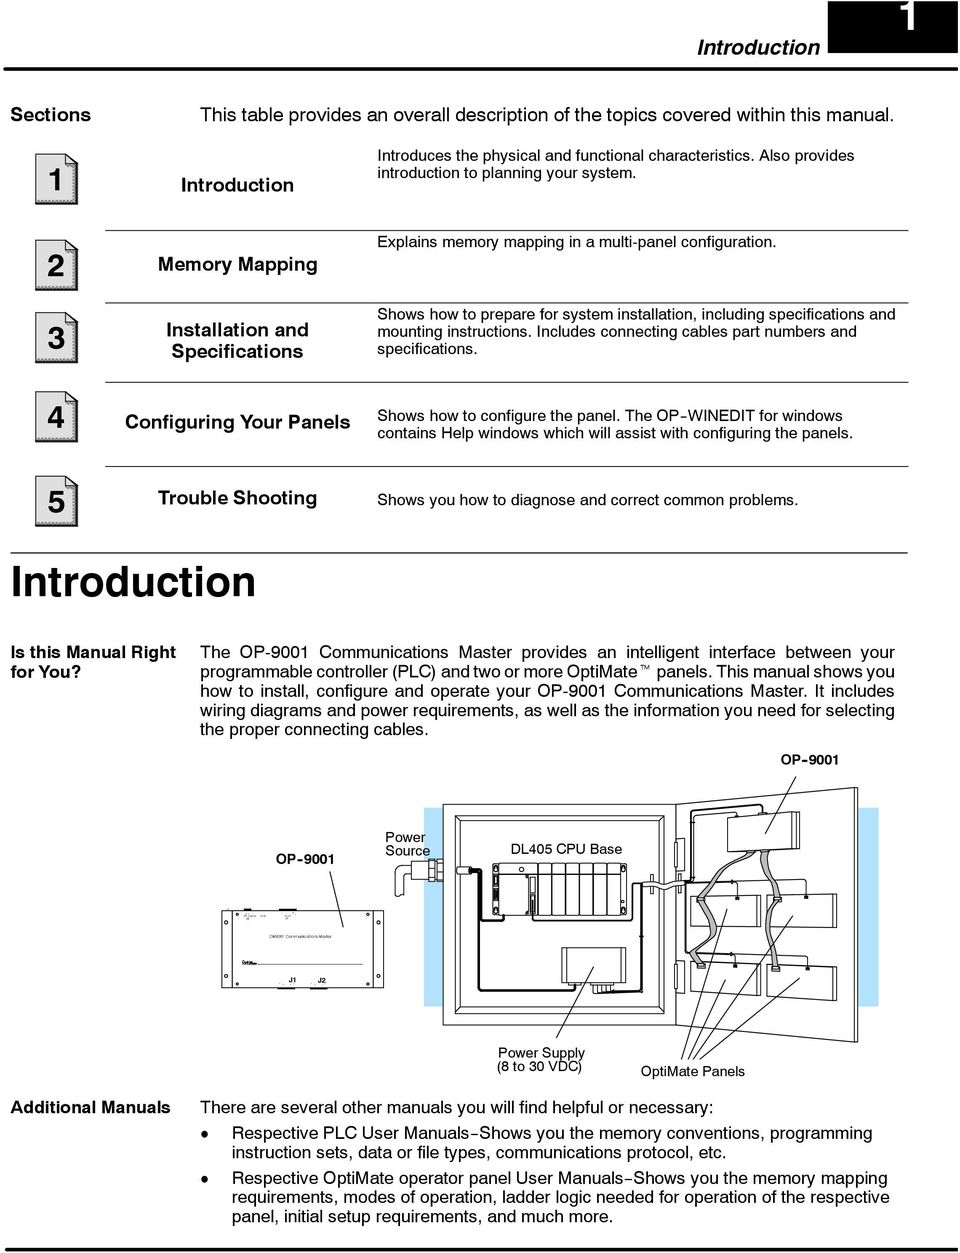 Shows how to prepare for system installation, including specifications and mounting instructions. Includes connecting cables part numbers and specifications.